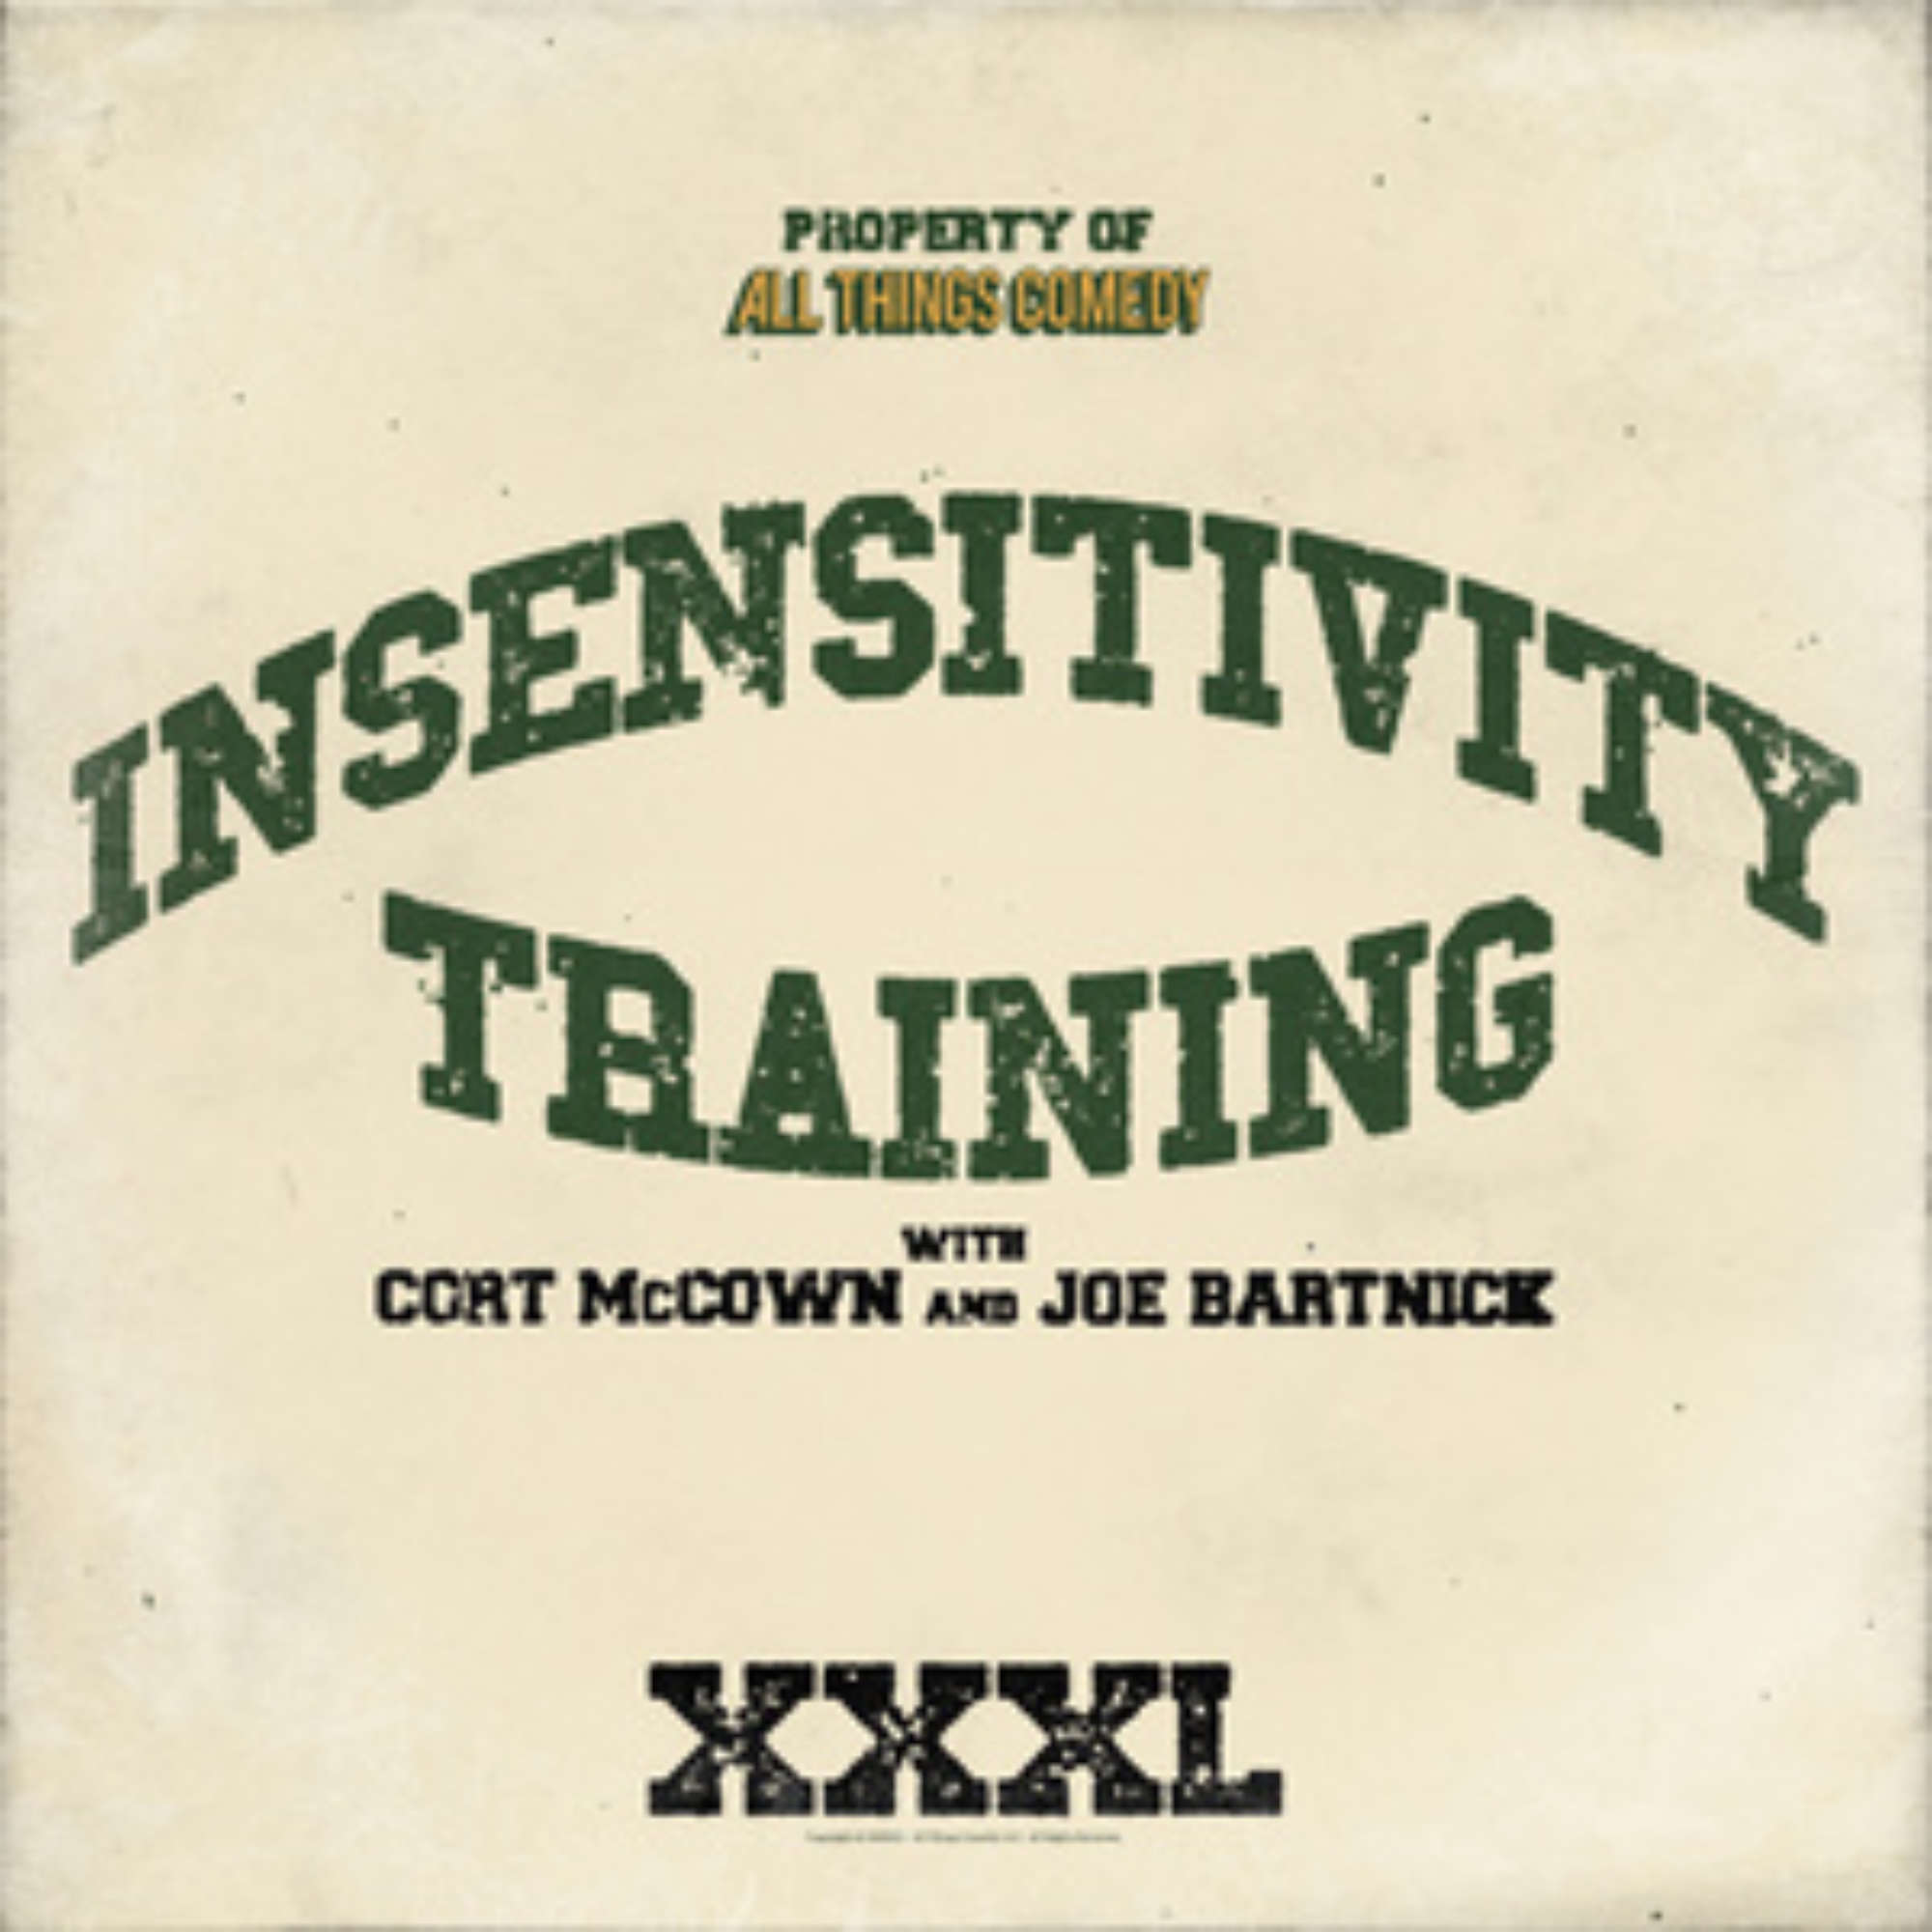 Xxxl Poster Insensitivity Training All Things Comedy